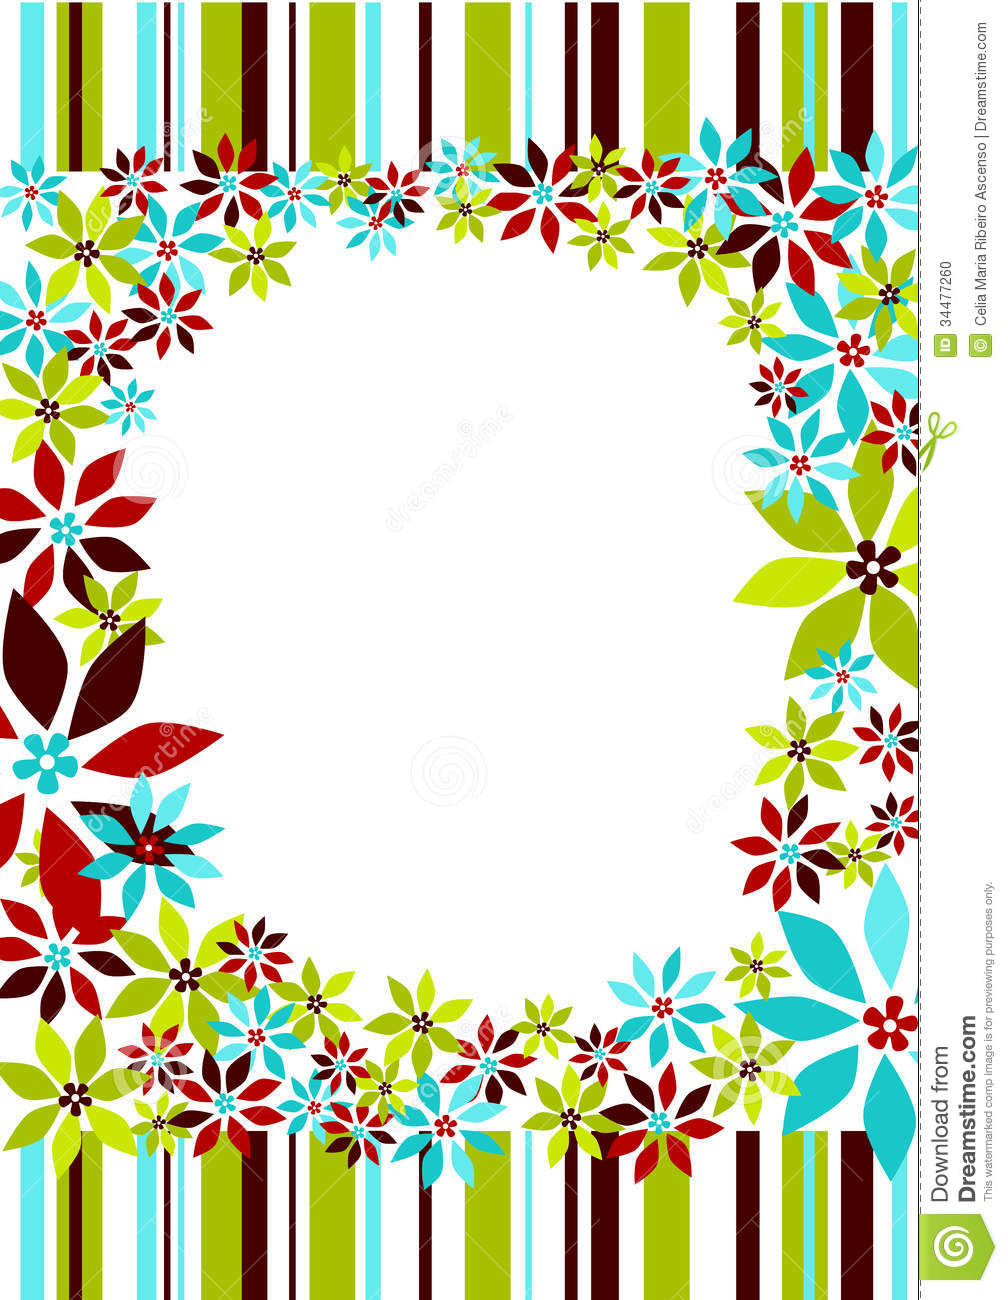 Flowers and borders graphic free Borders and flowers - ClipartFest graphic free